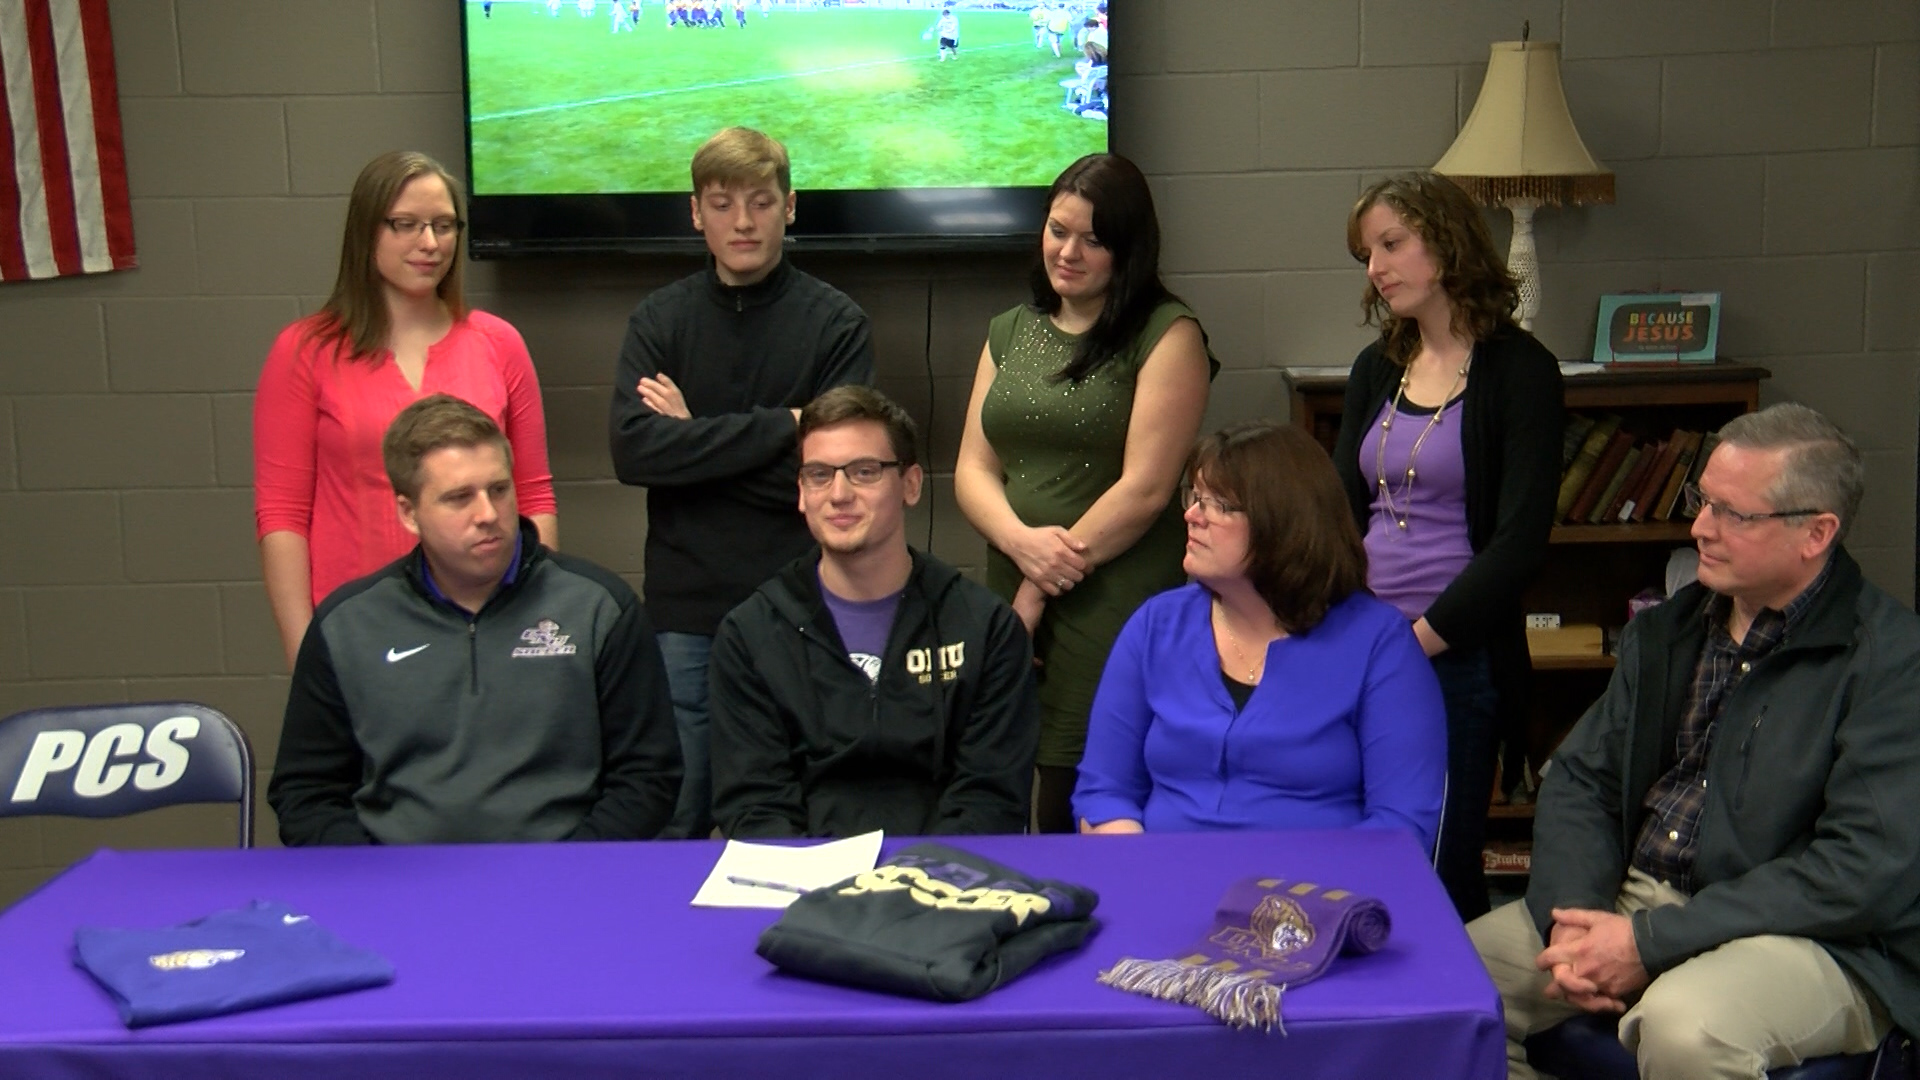 Jon Wuebben signs with Olivet_1488253169733.jpg